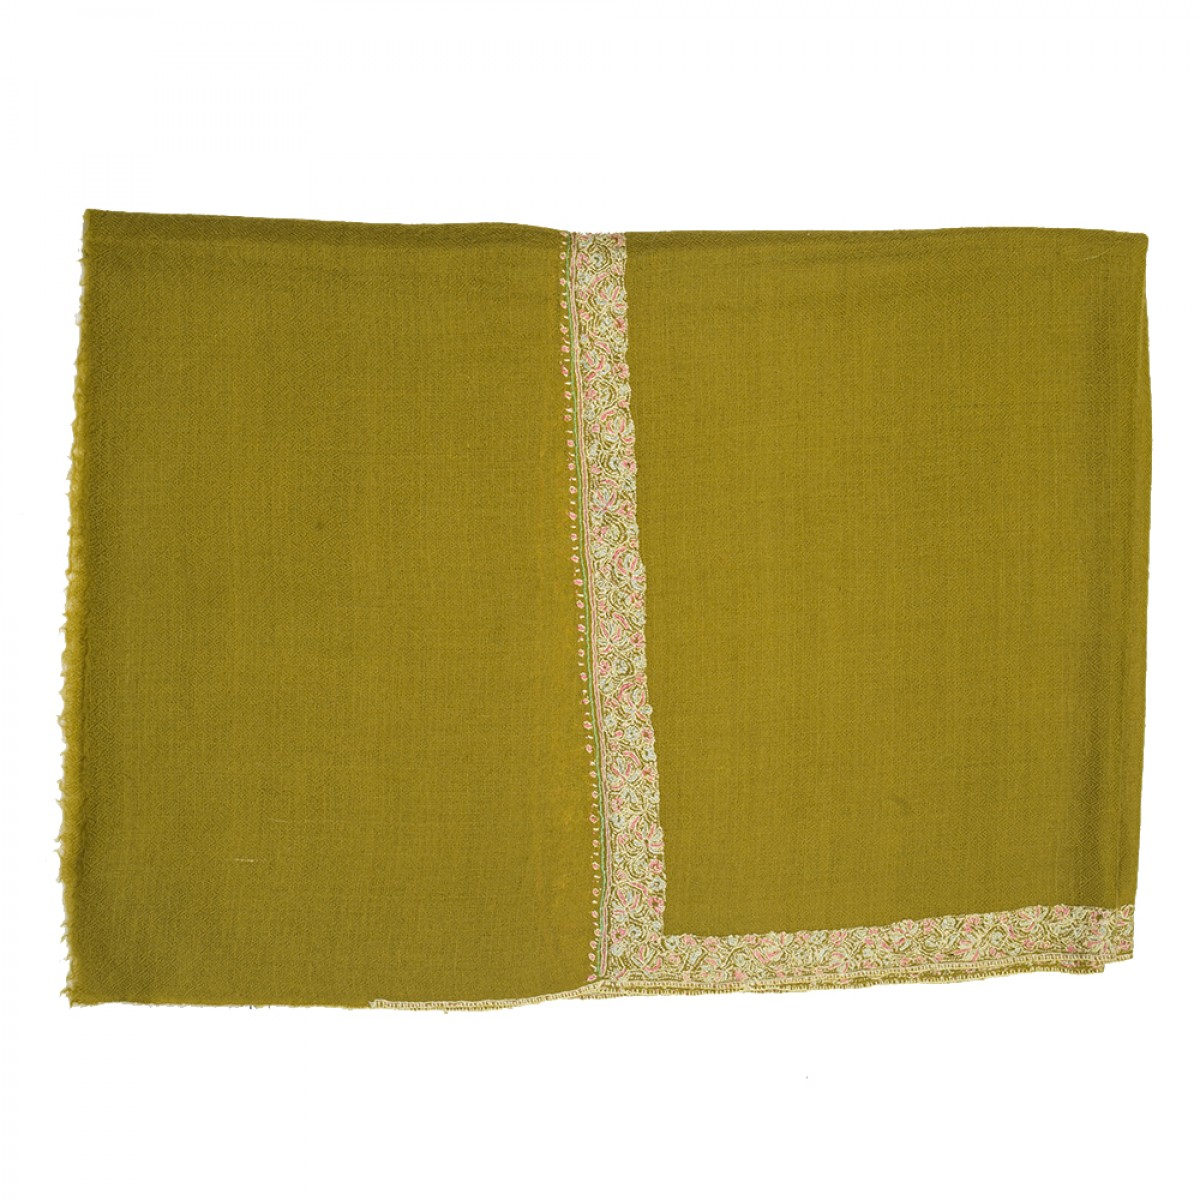 Hand Embroidered Cashmere Pashmina Stole - Olive Green